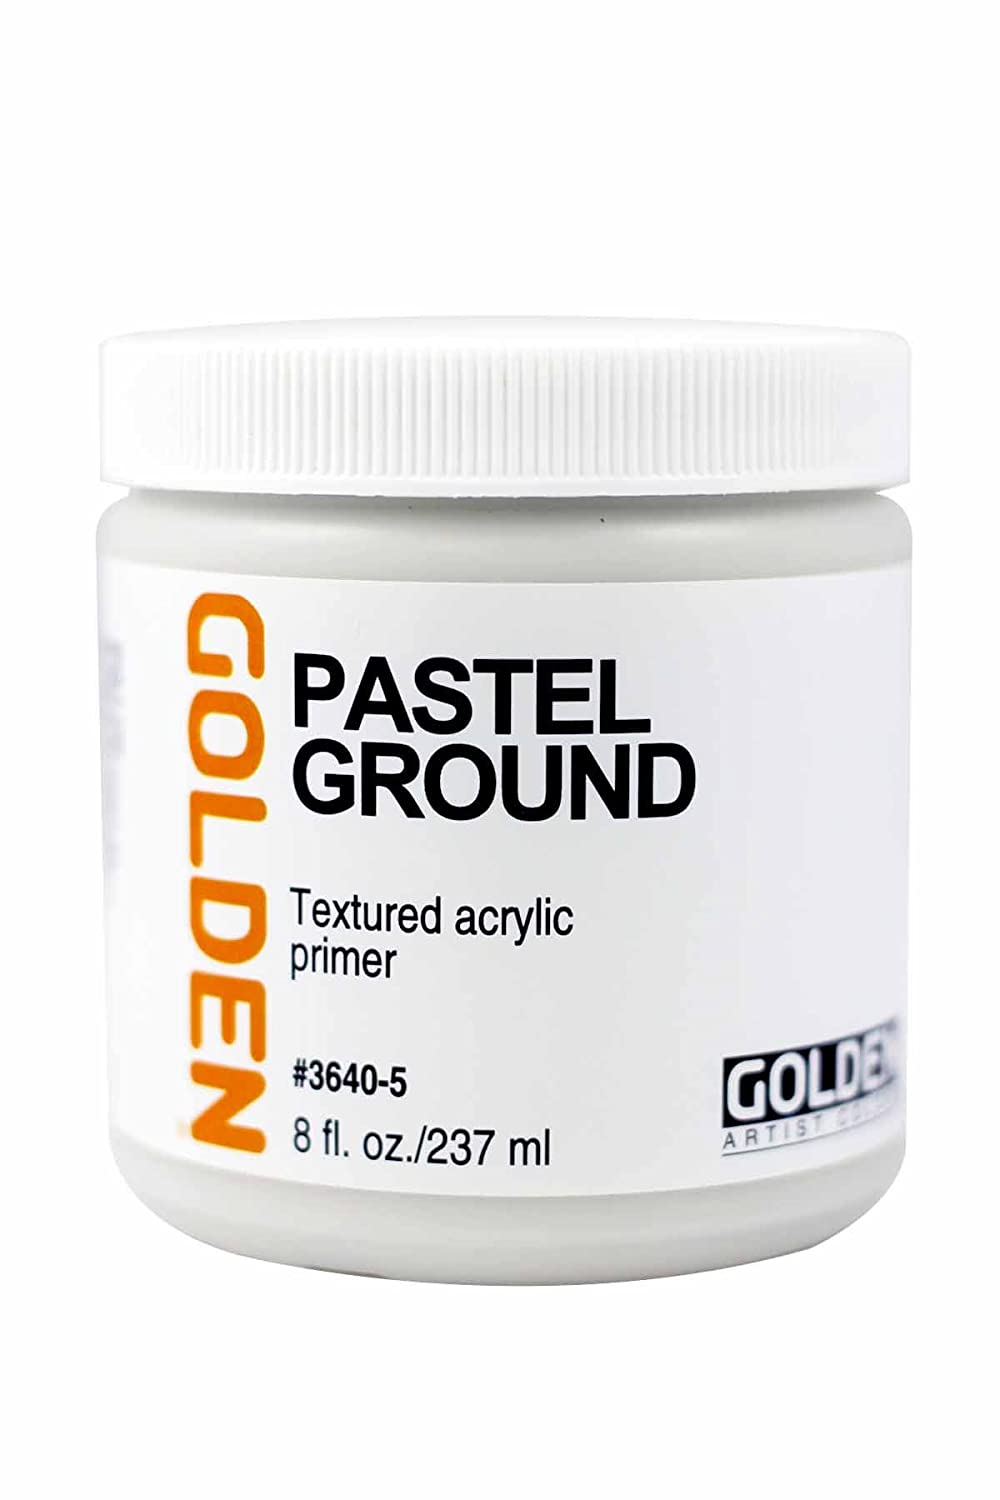 Pro-Art Mediums Golden Acrylic Ground for Pastel-8 oz 36405